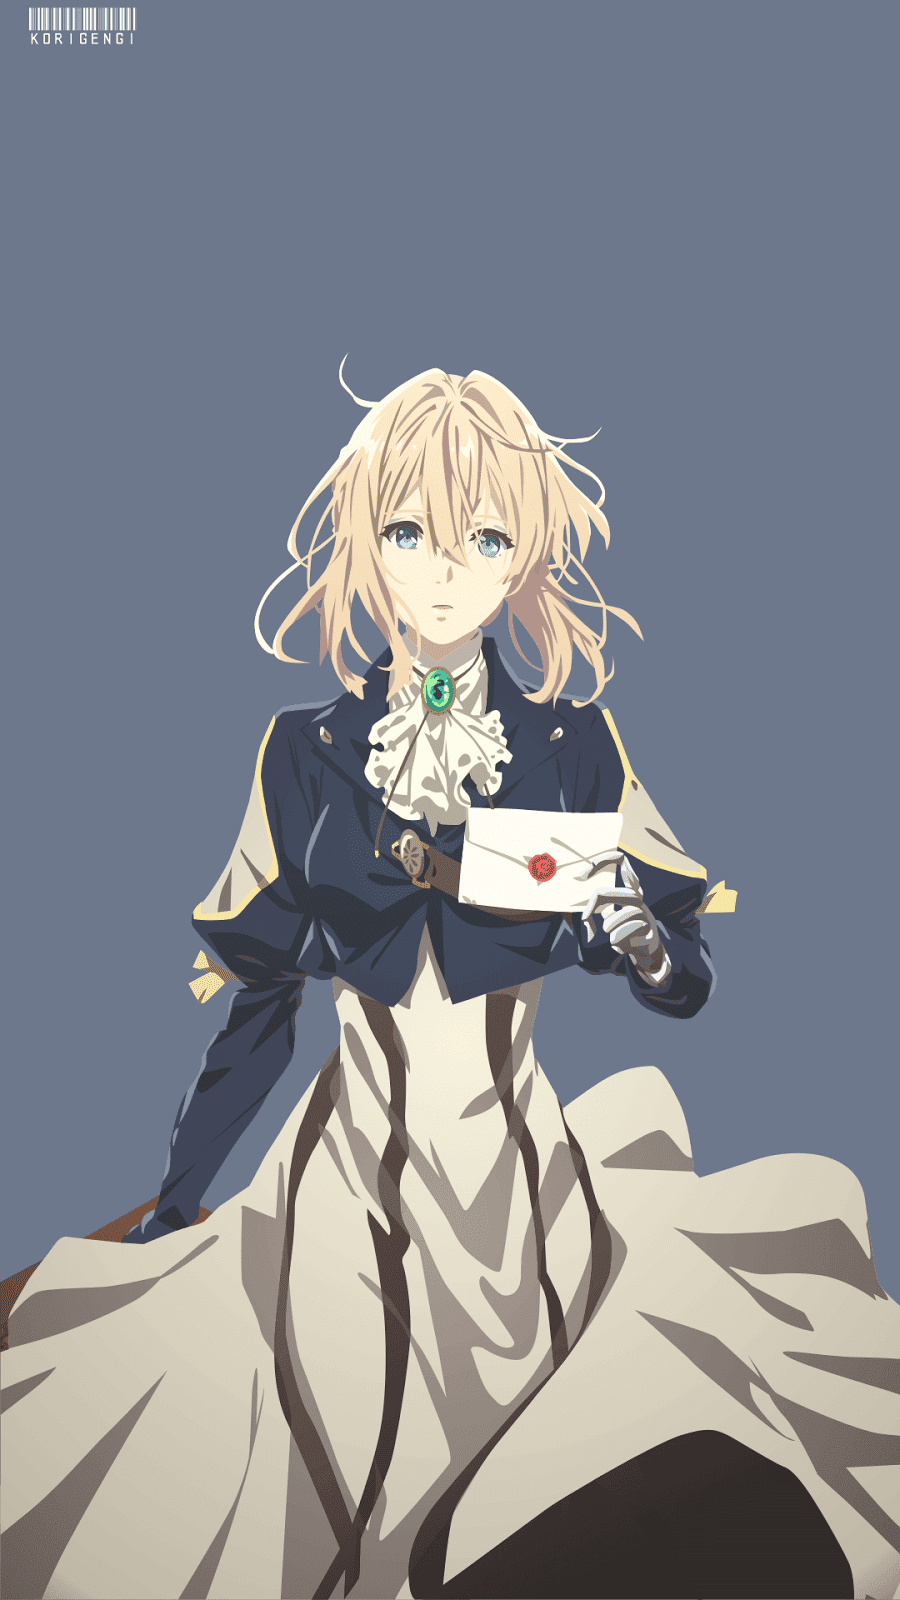 violet evergarden korigengi anime wallpaper hd source